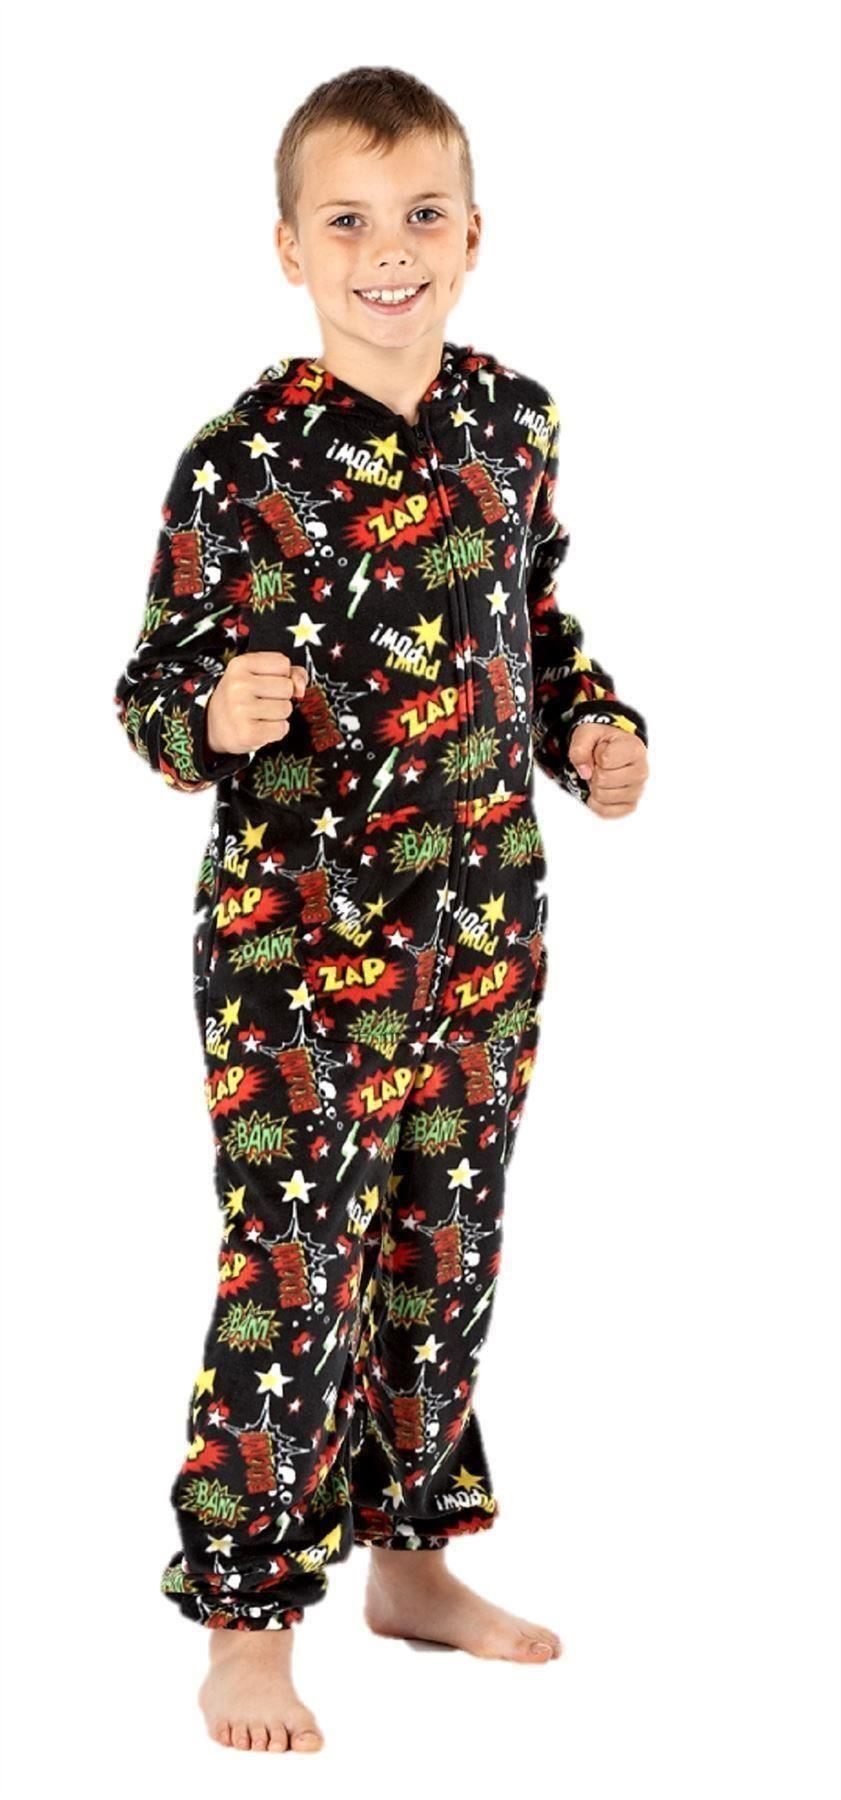 boys onesie all in one pyjamas one piece pajama romper age 7 8 9 10 11 12 13 ebay. Black Bedroom Furniture Sets. Home Design Ideas